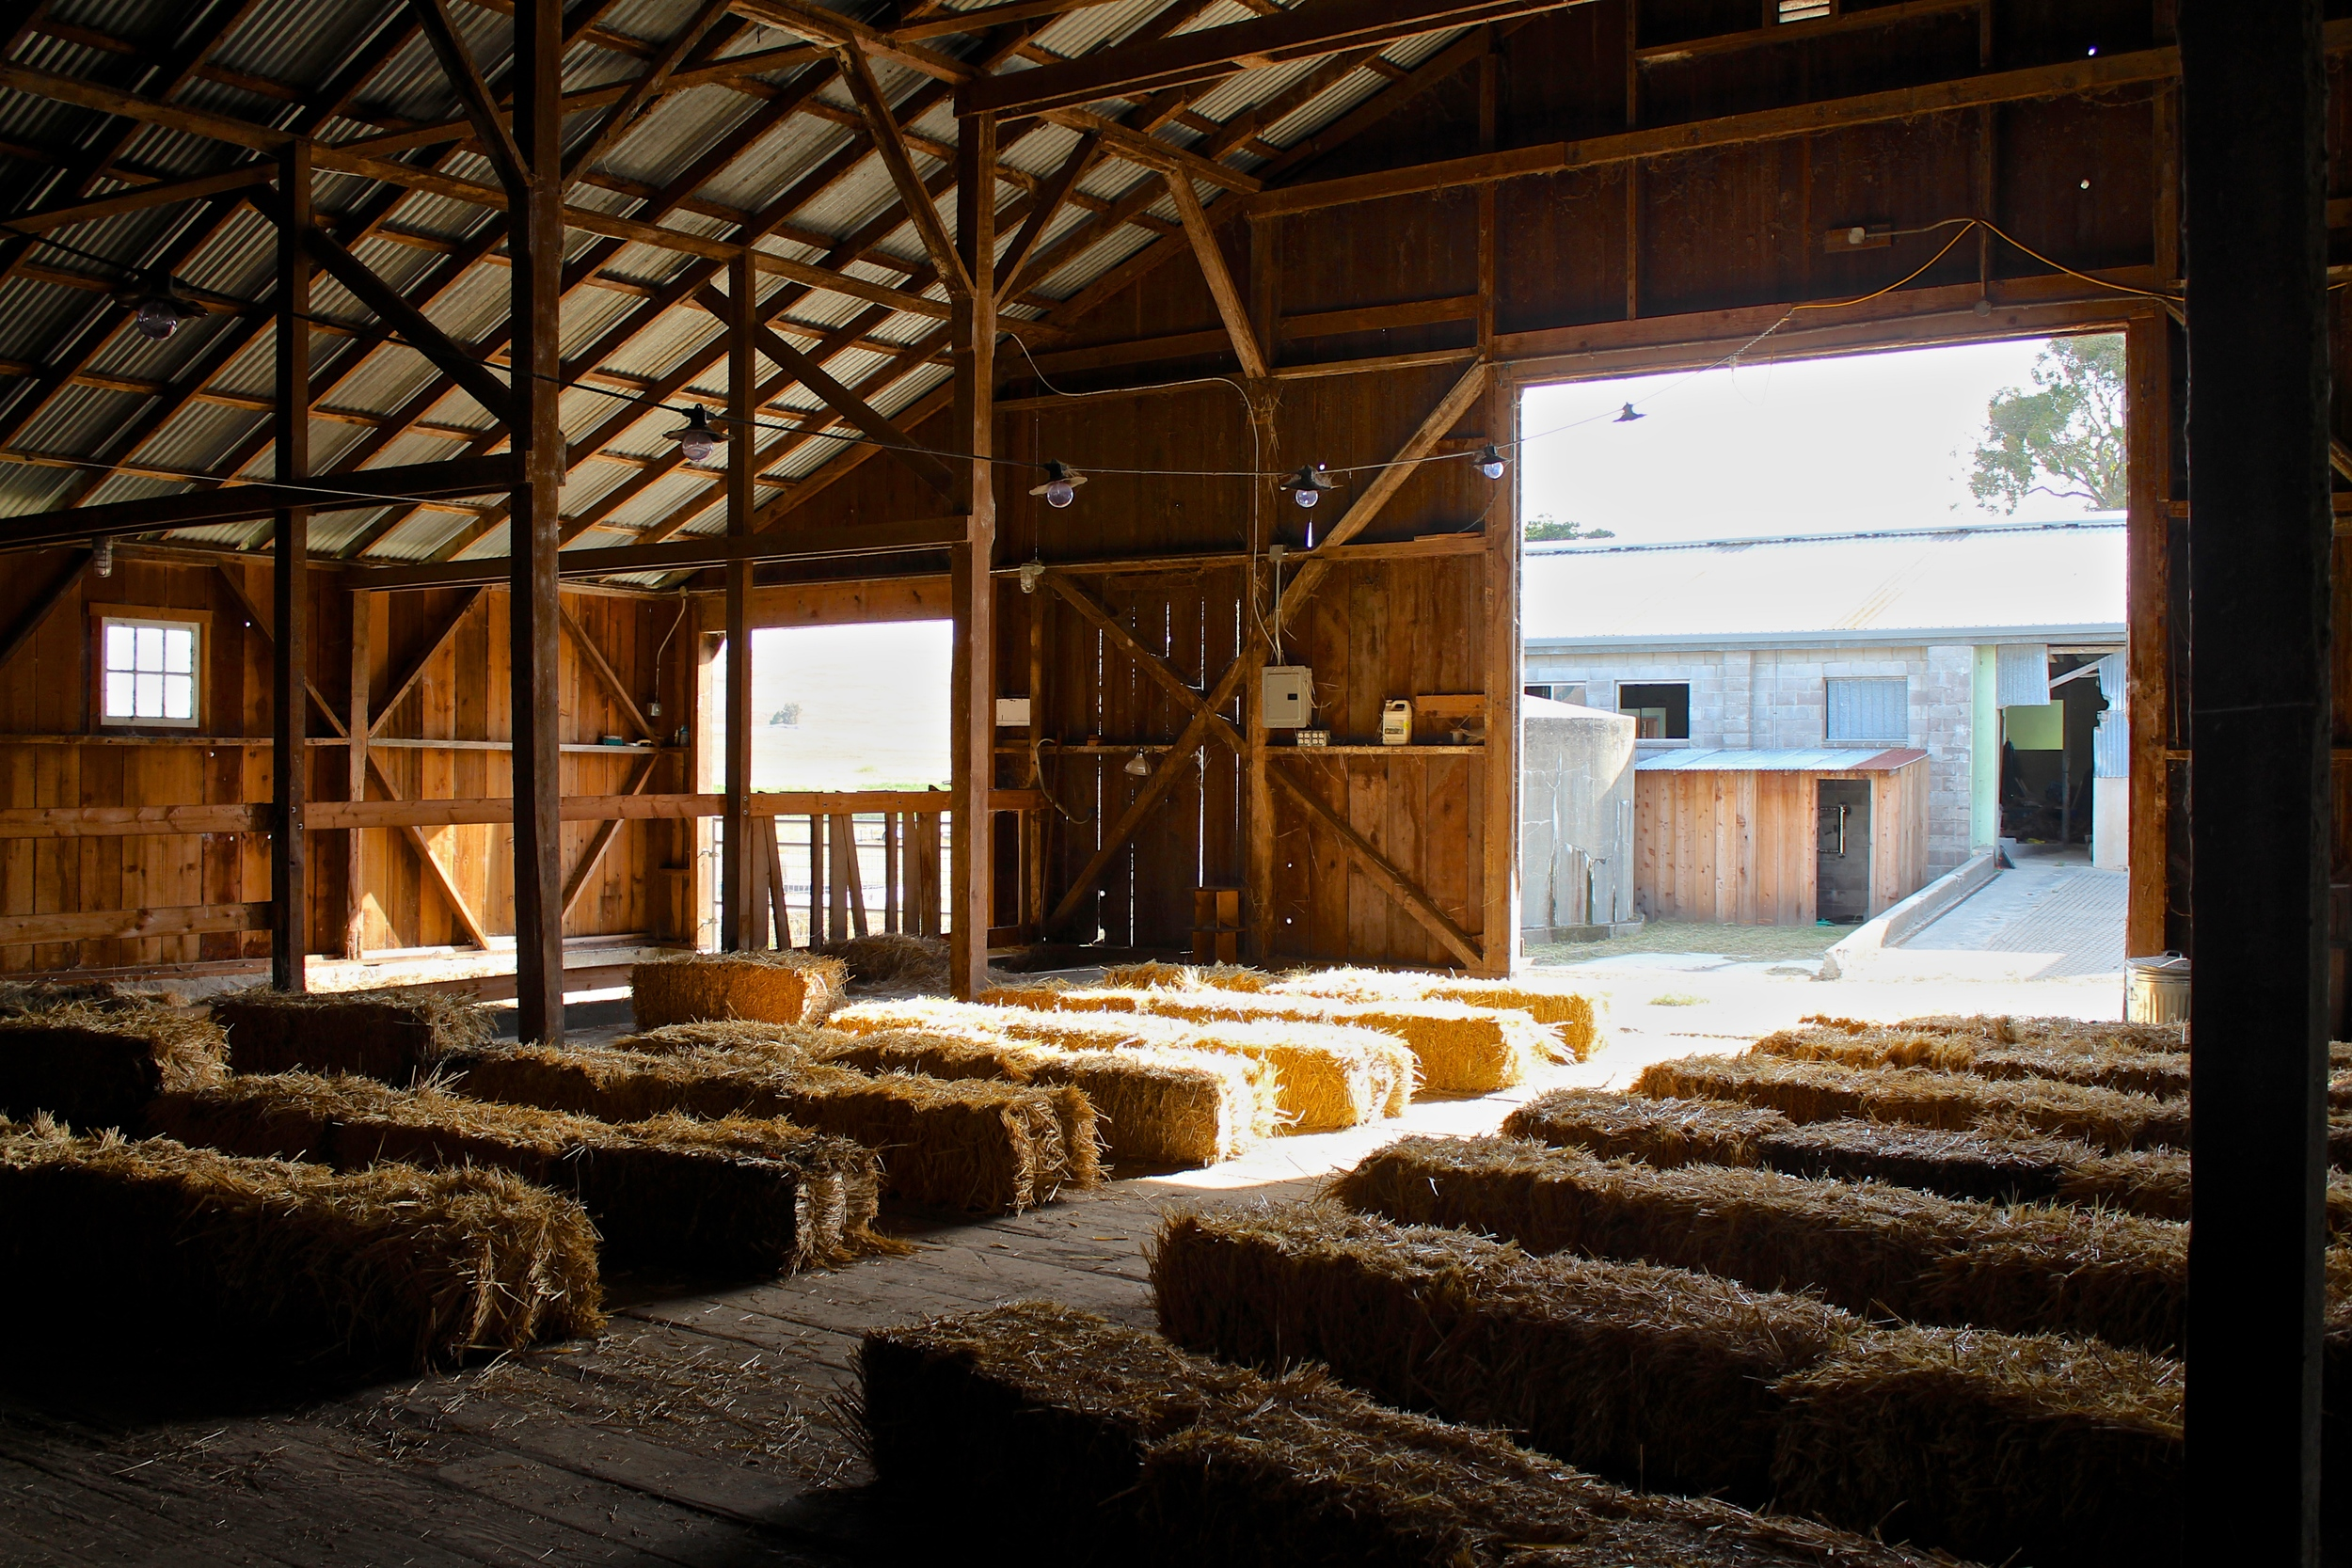 The hay barn set up for a talk.